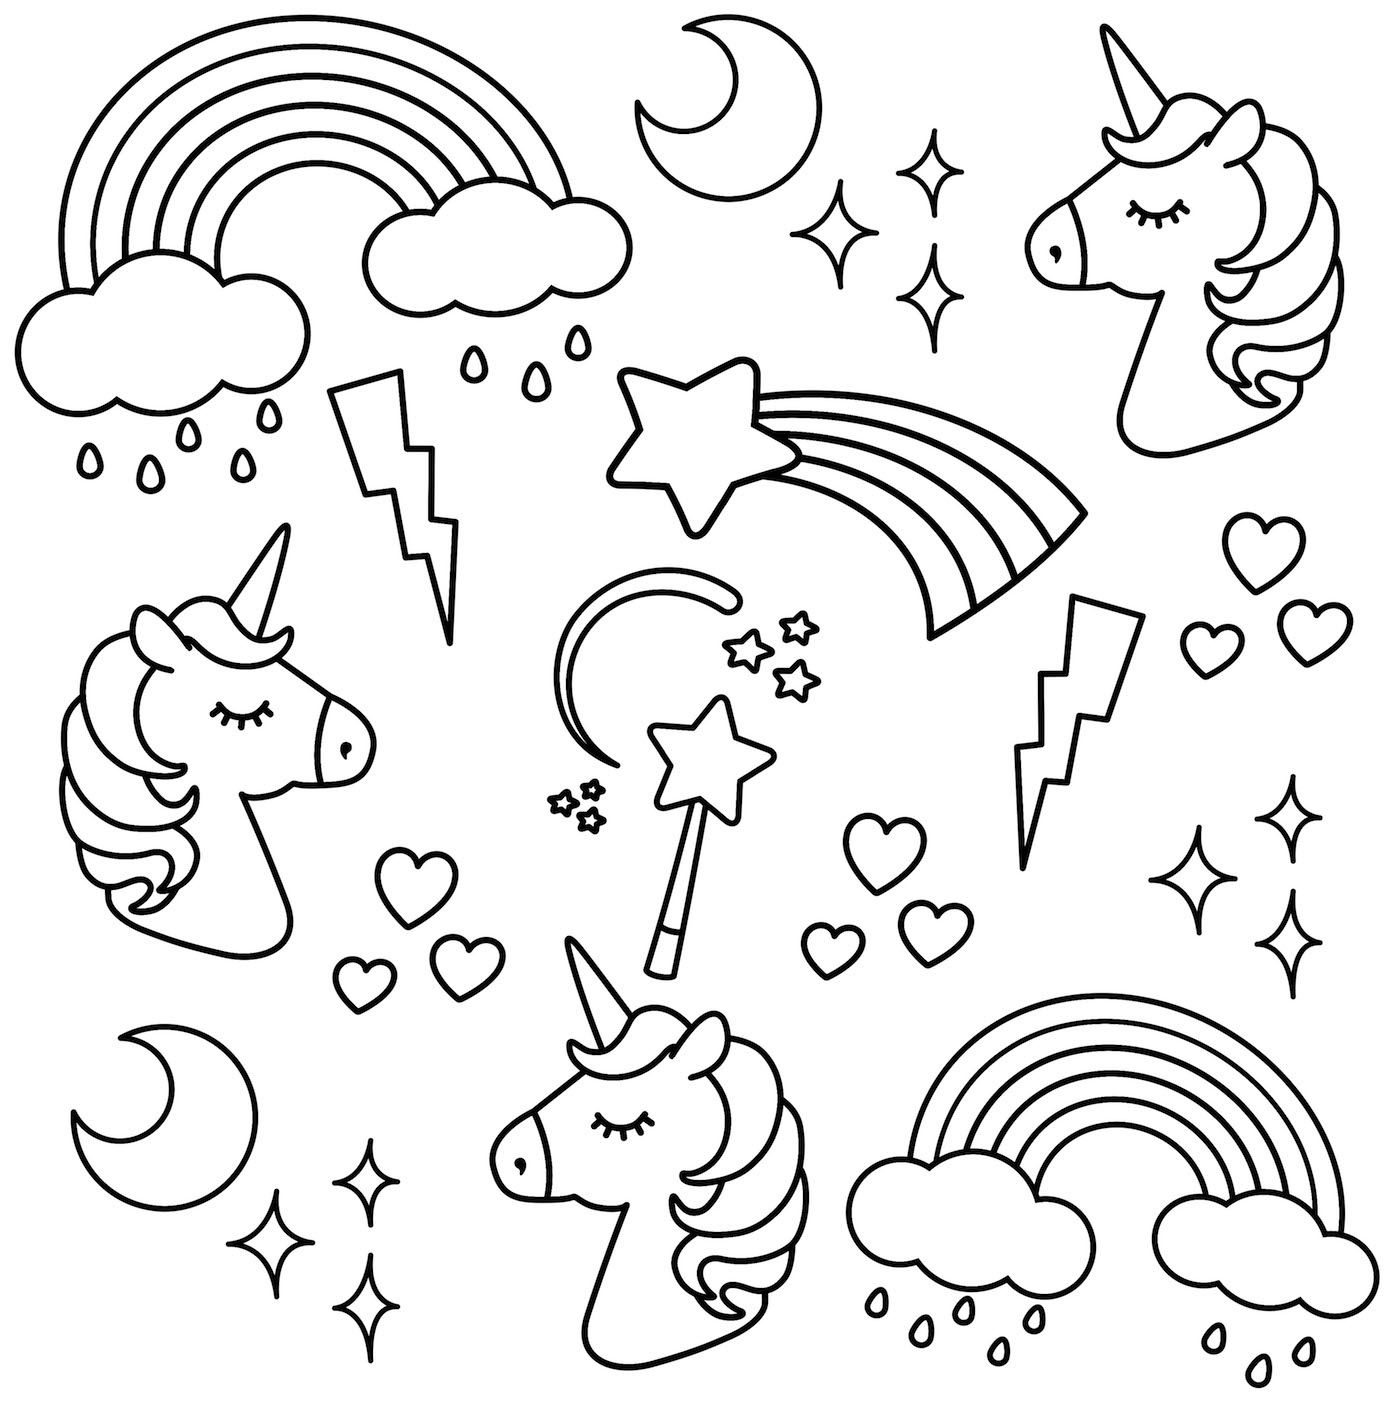 coloring pictures of unicorn adorable unicorn coloring pages for girls and adults updated of unicorn pictures coloring